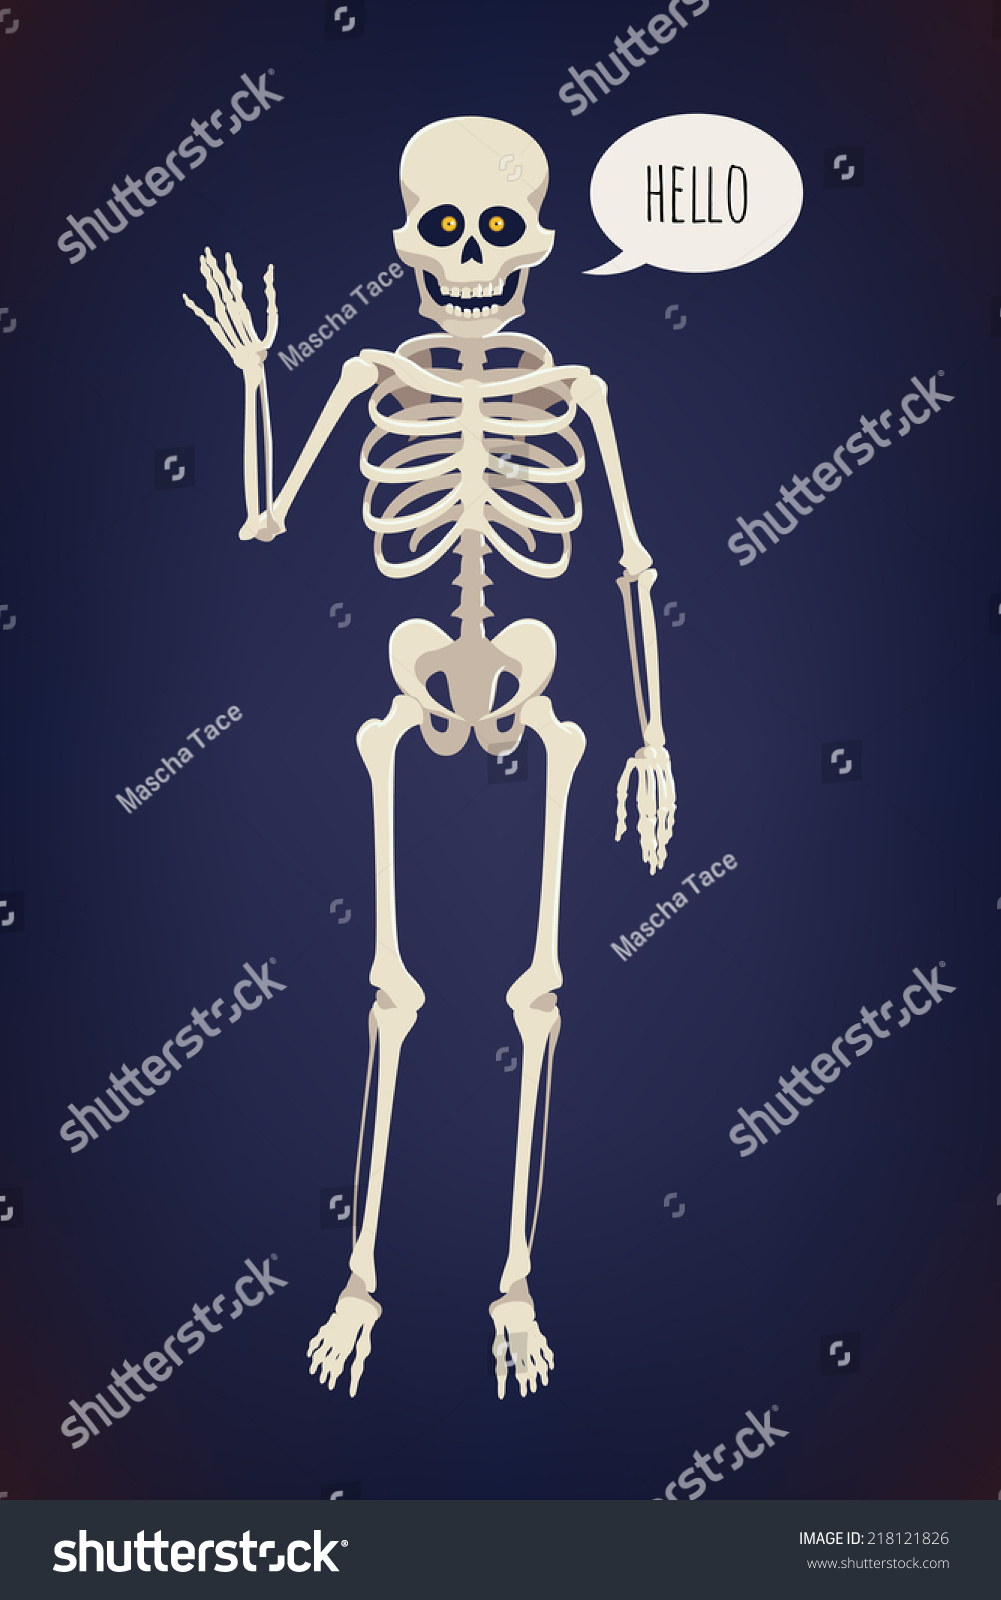 Vector Flat Cartoon Bright Colored Human Skeleton Character With Glowing Orange Eyes Waving Hand And